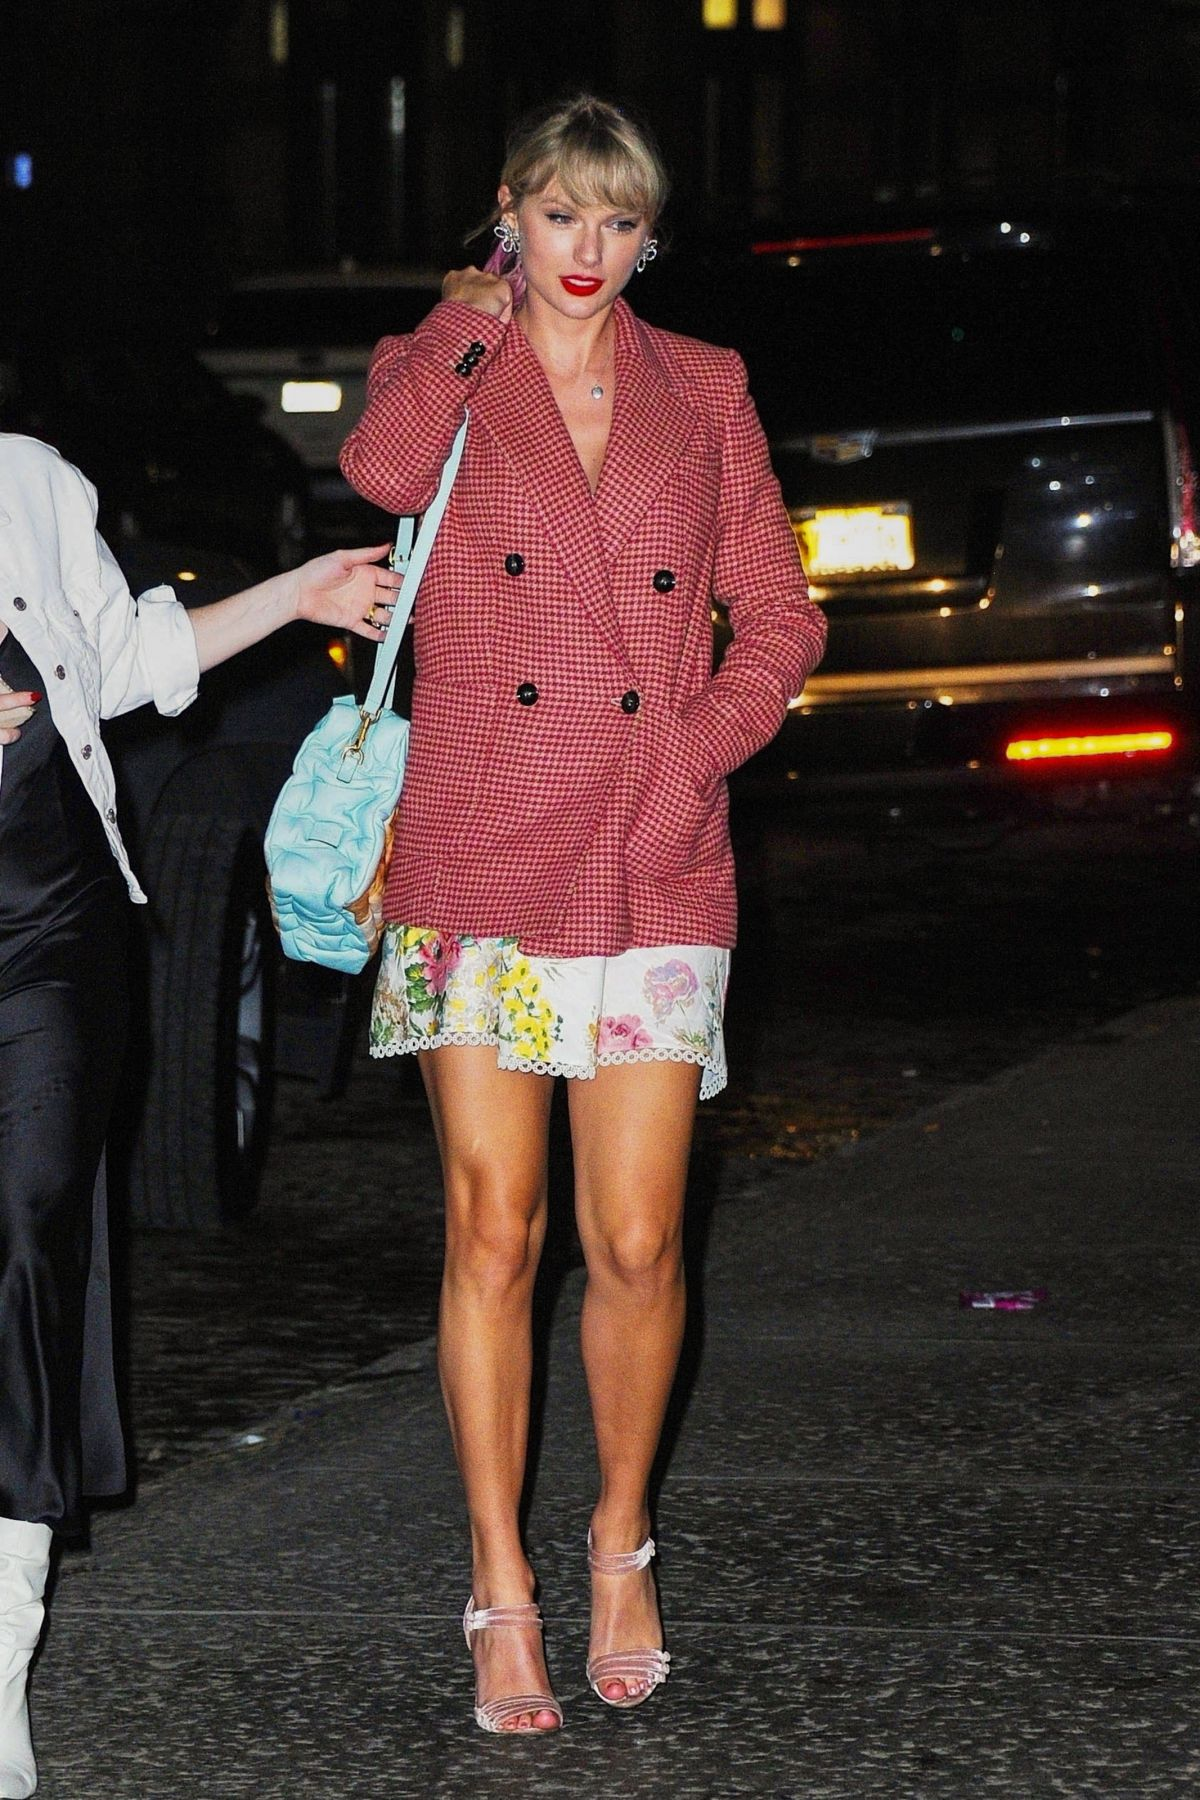 Taylor Swift Returning home in NYC - Celebzz